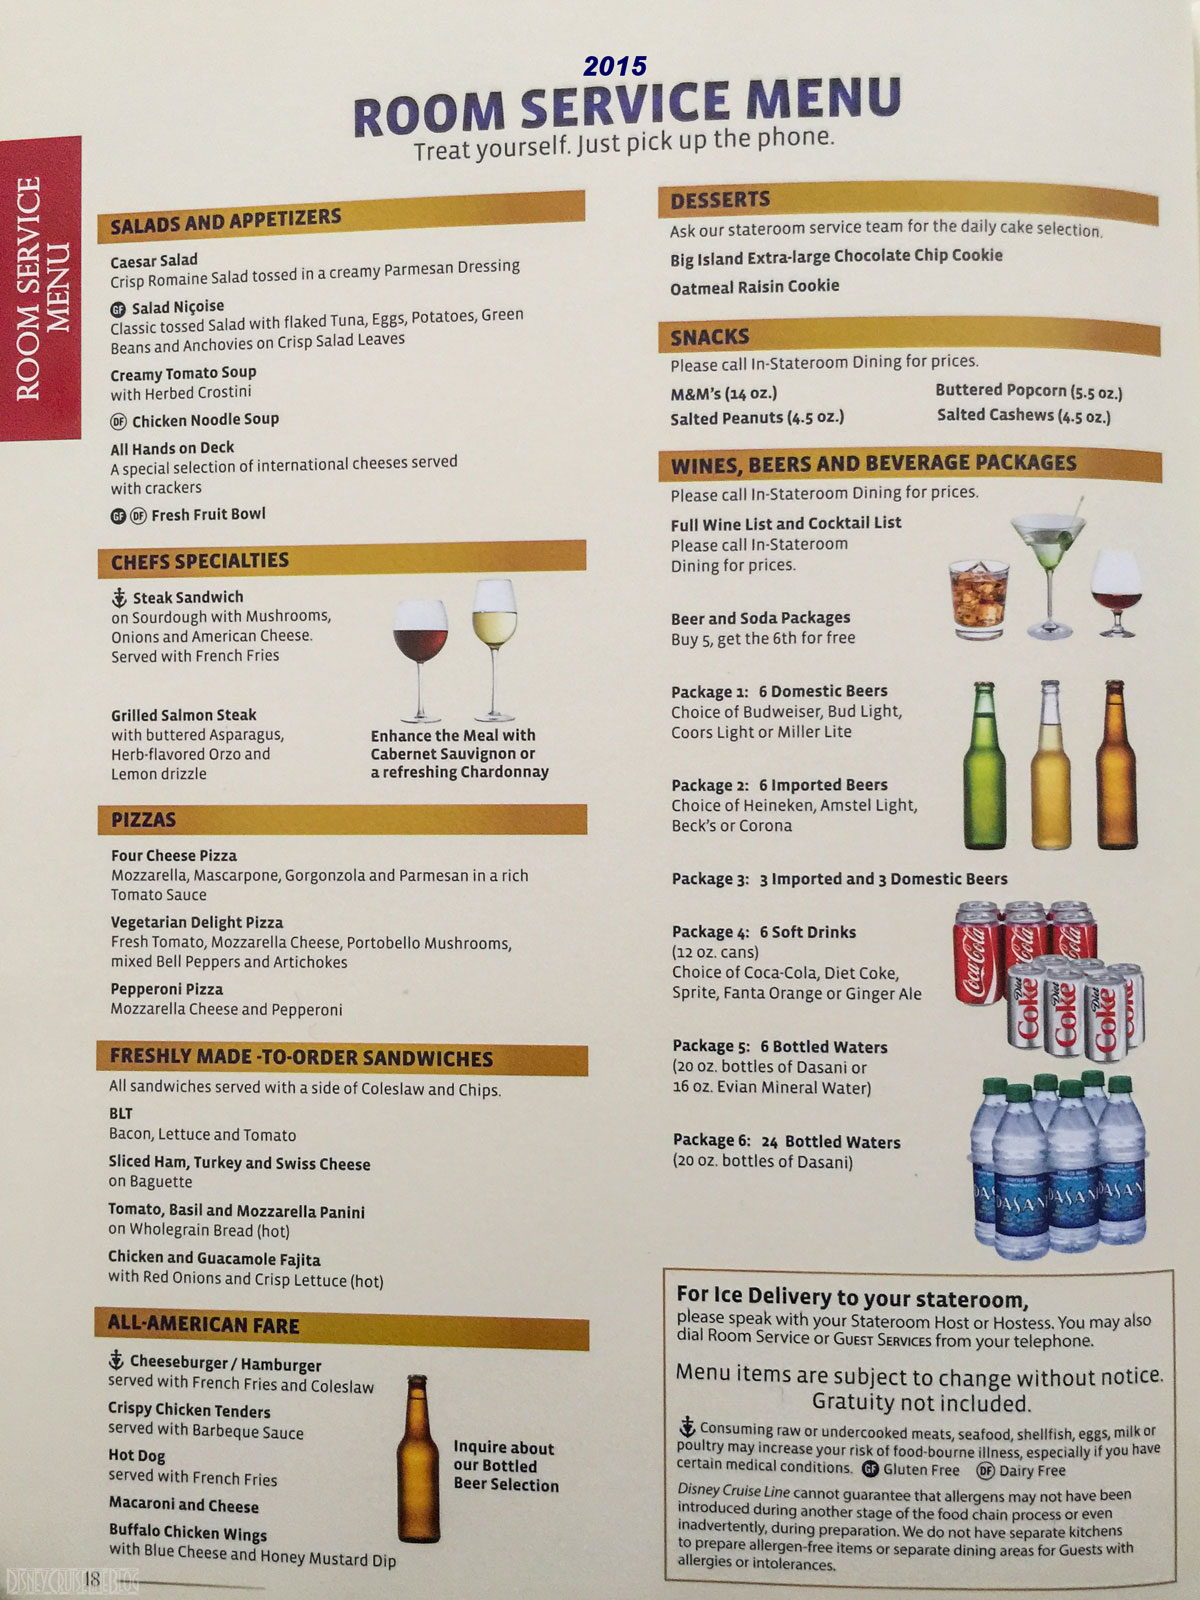 Carnival Victory Room Service Menu Pictures To Pin On